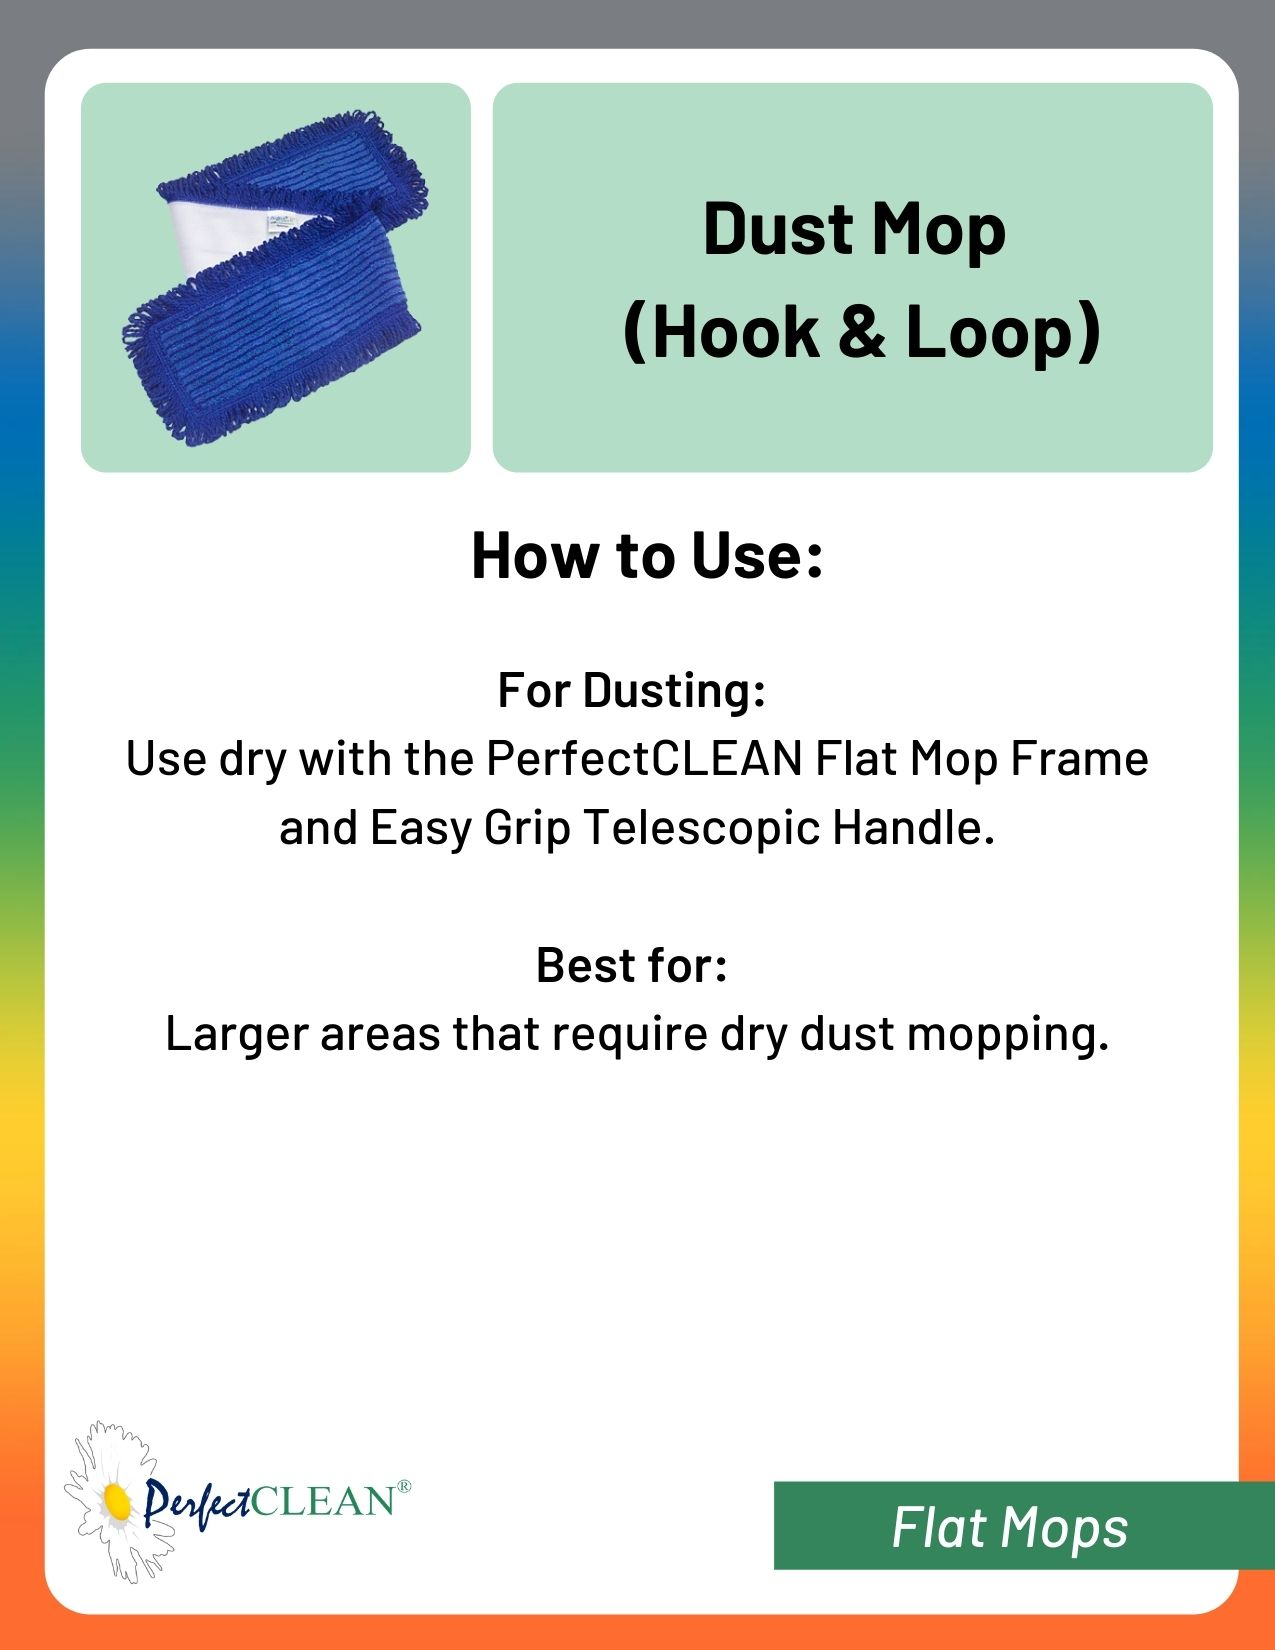 Dust Mop product card image